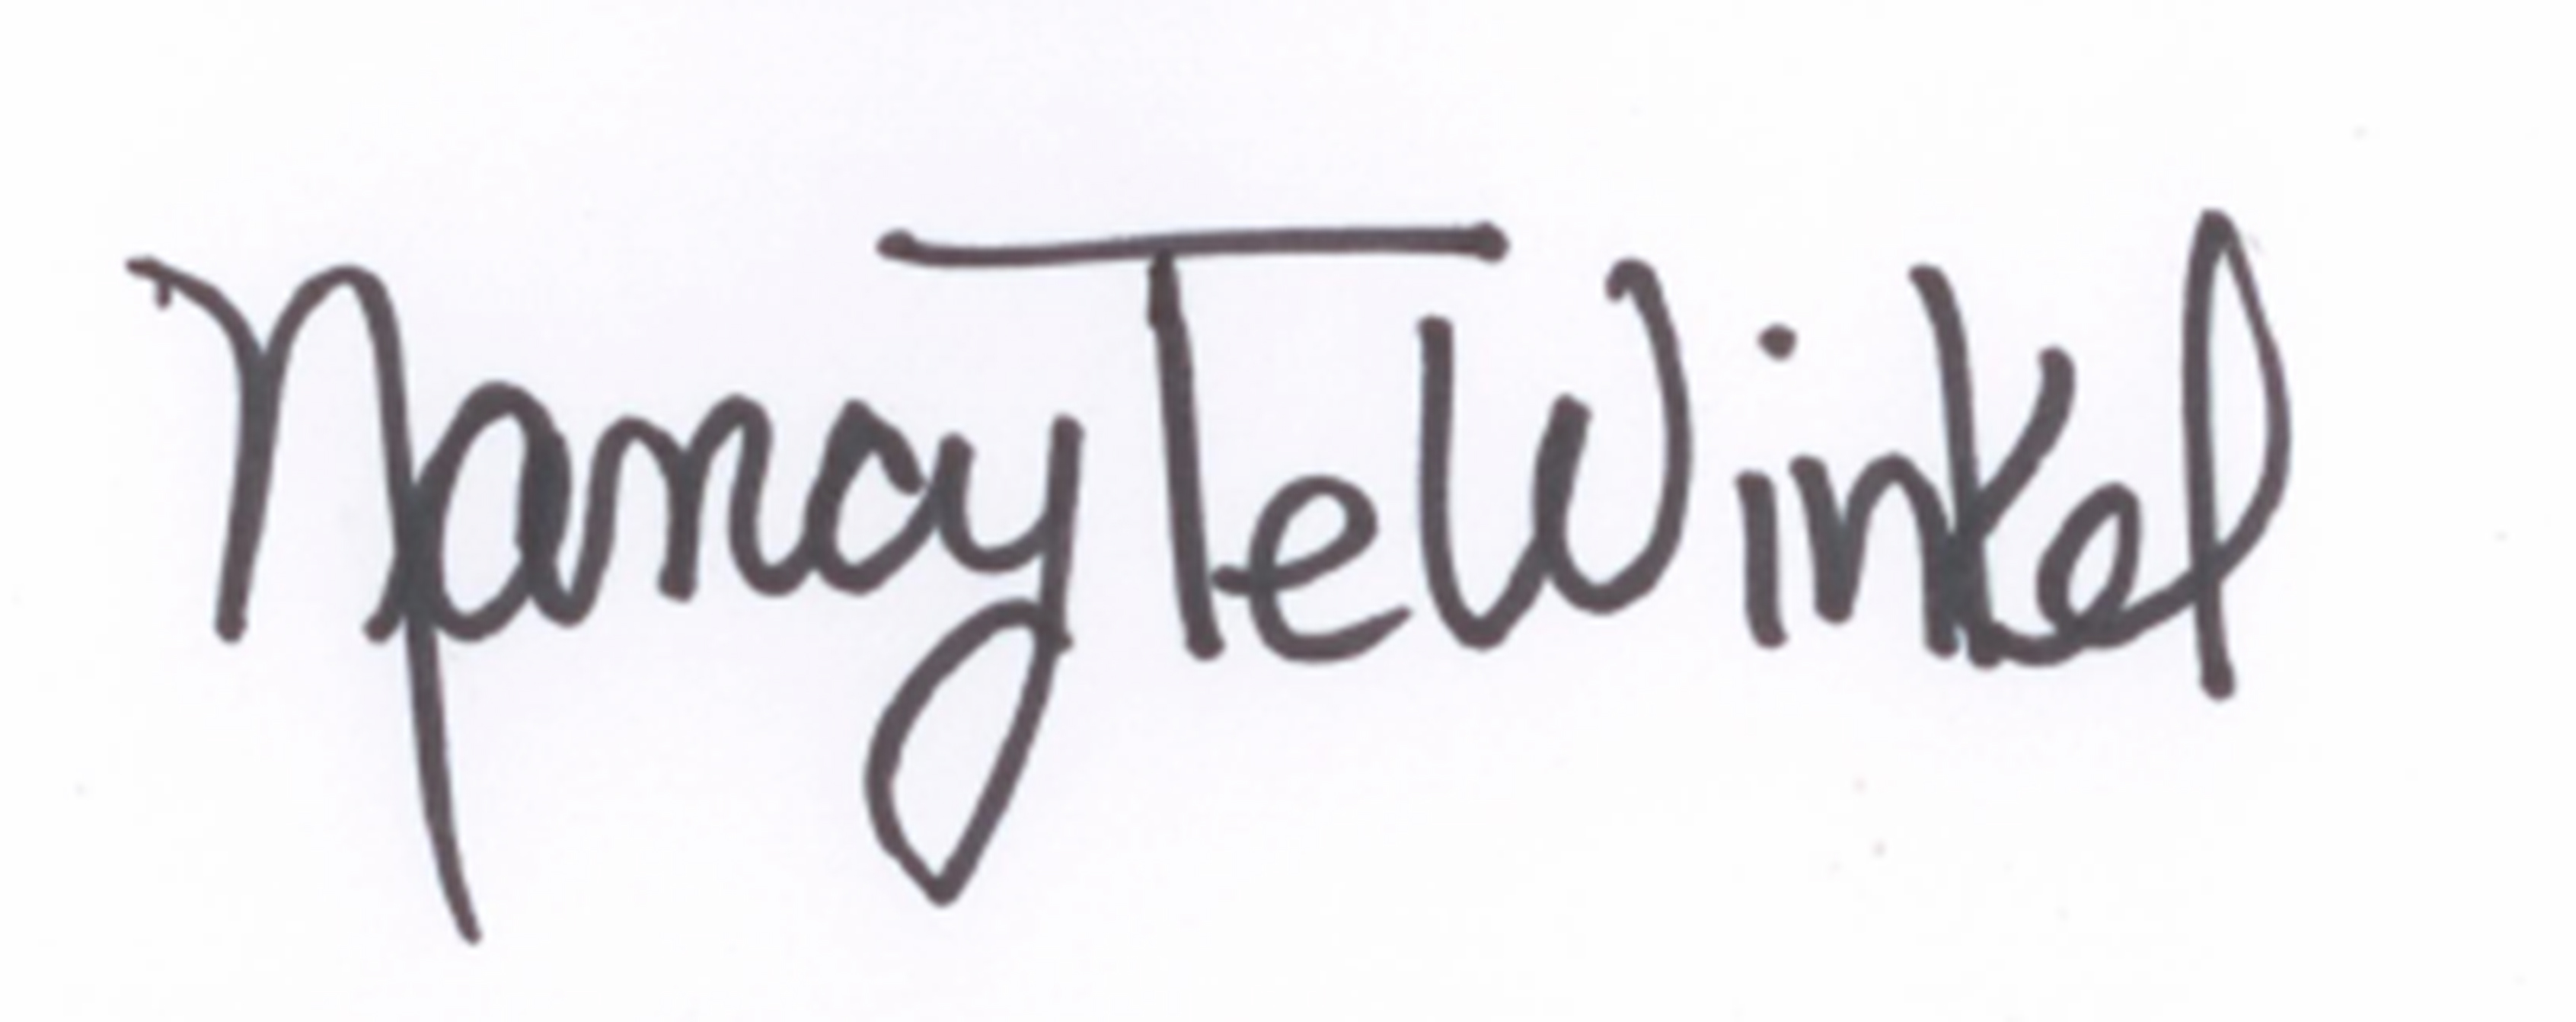 Nancy TeWinkel's Signature